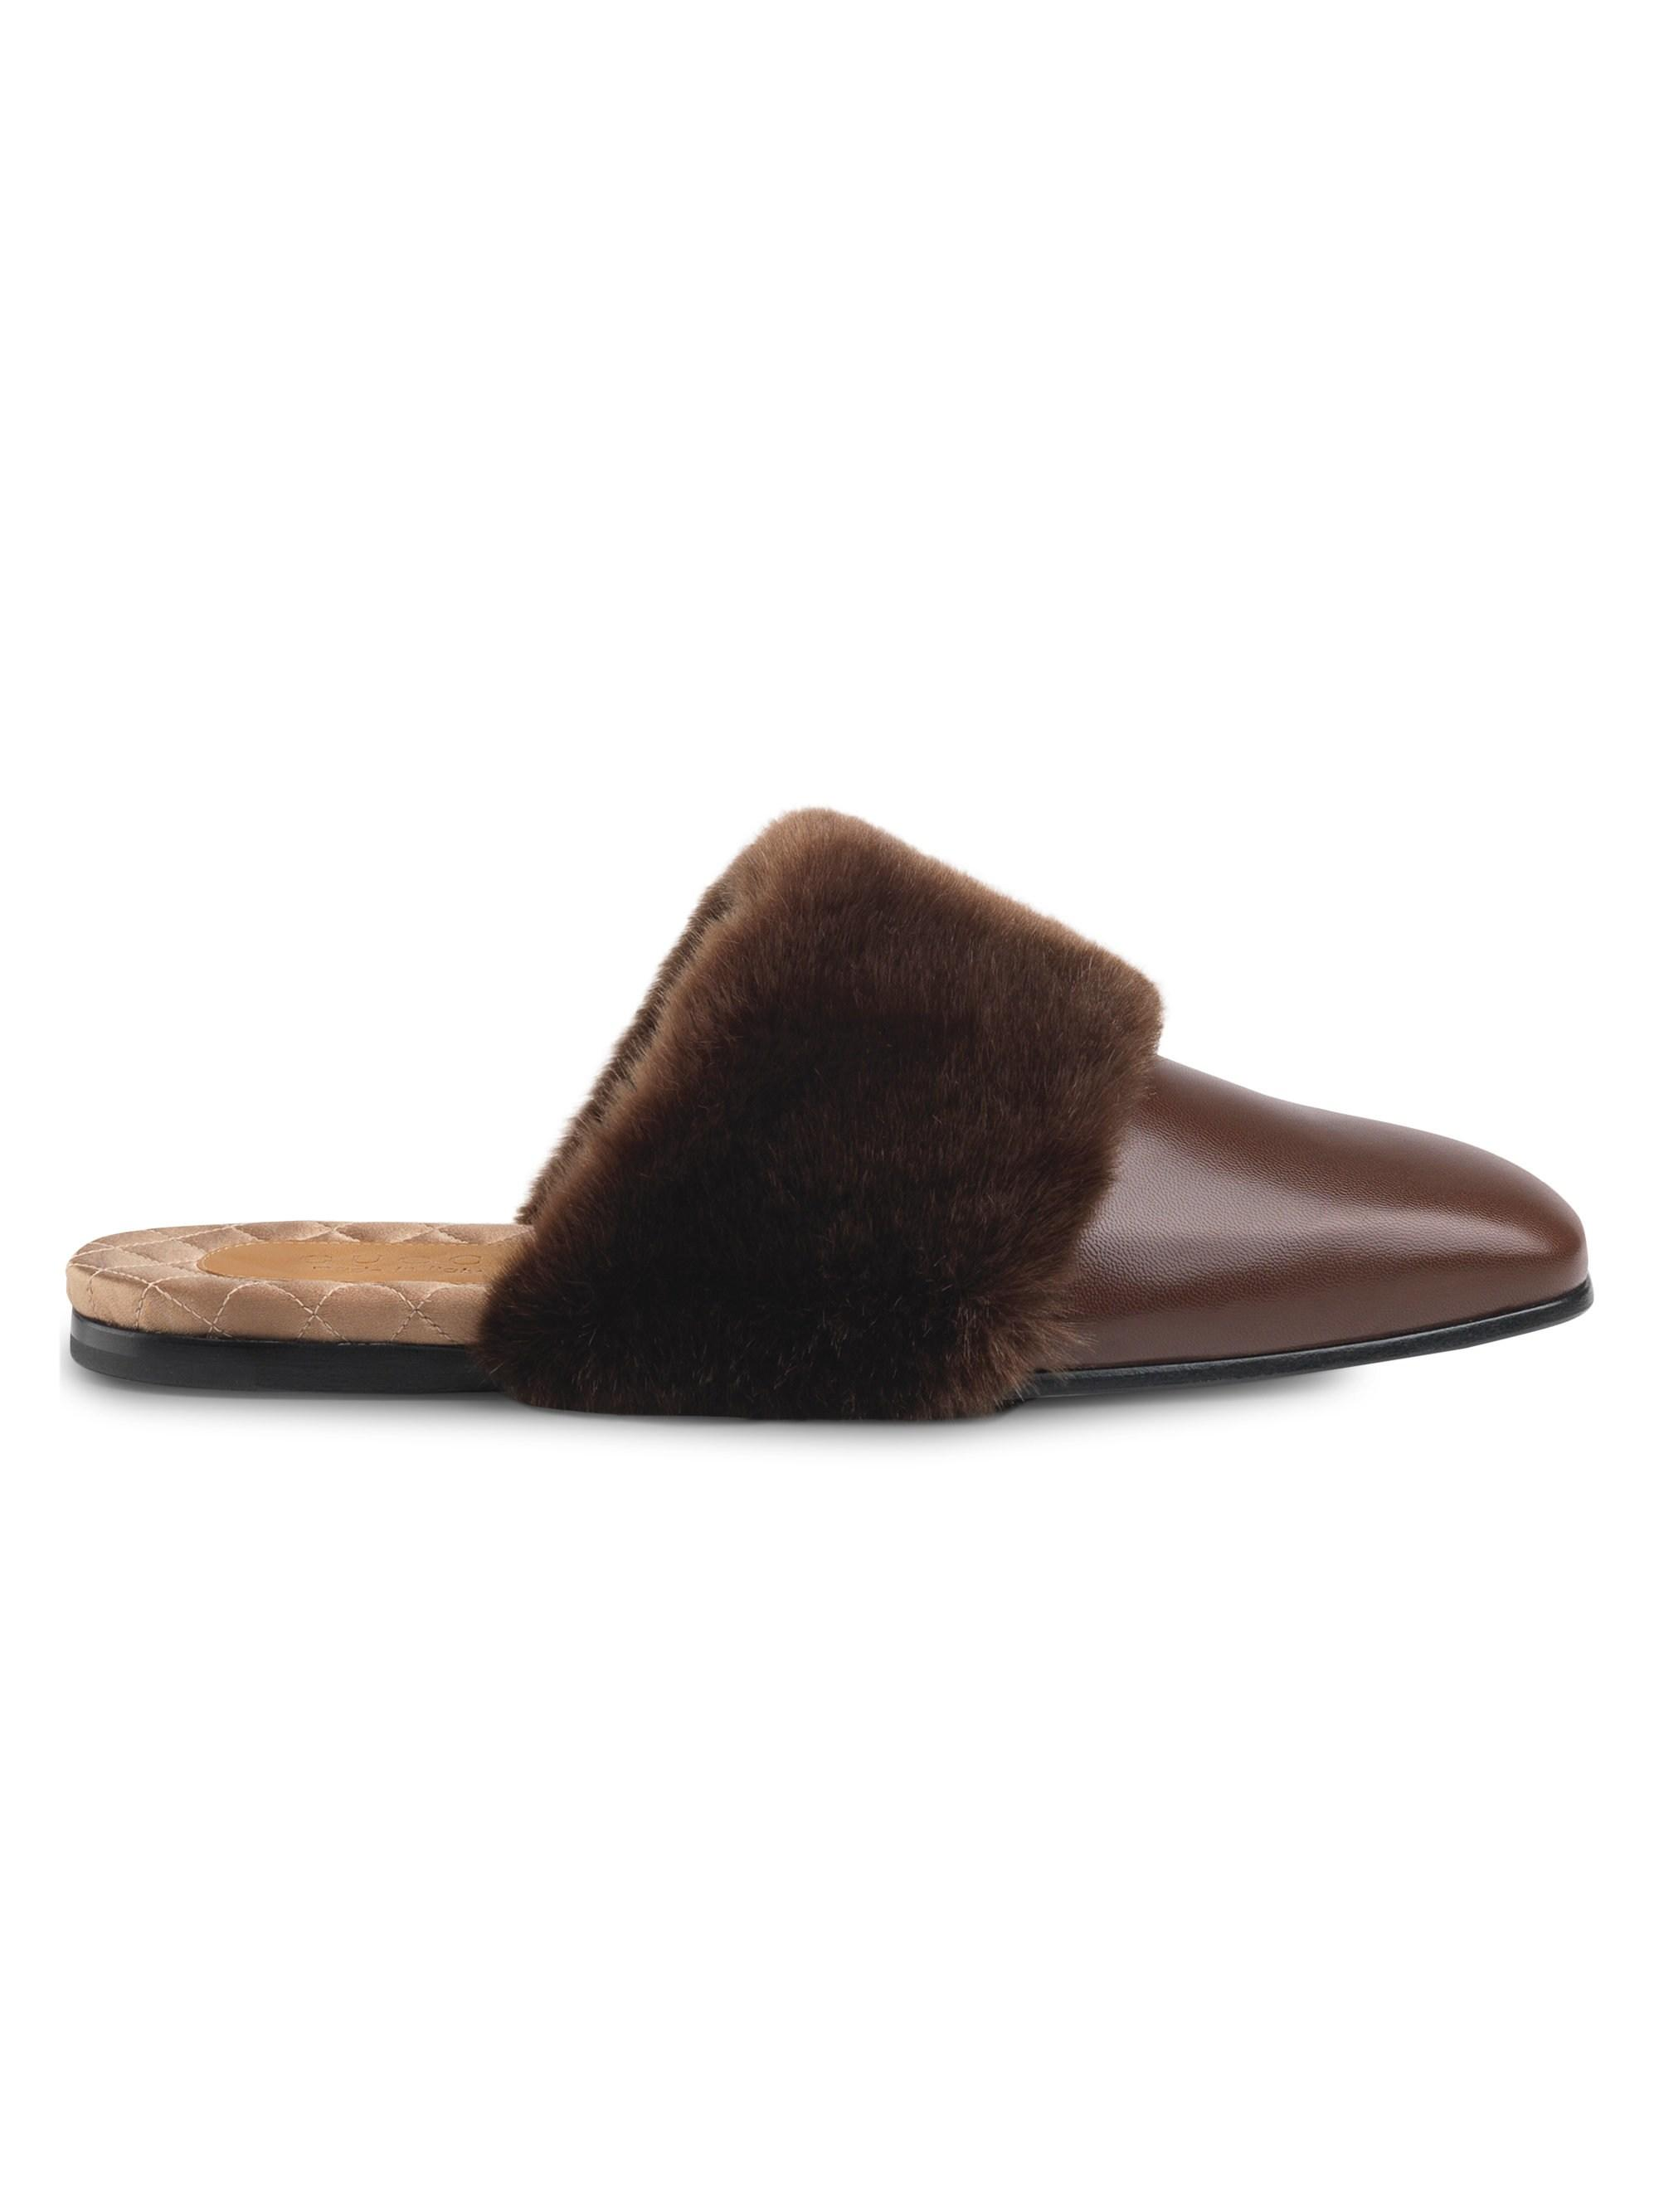 0c3202d4c Gucci Leather & Faux Fur Slipper in Brown for Men - Lyst